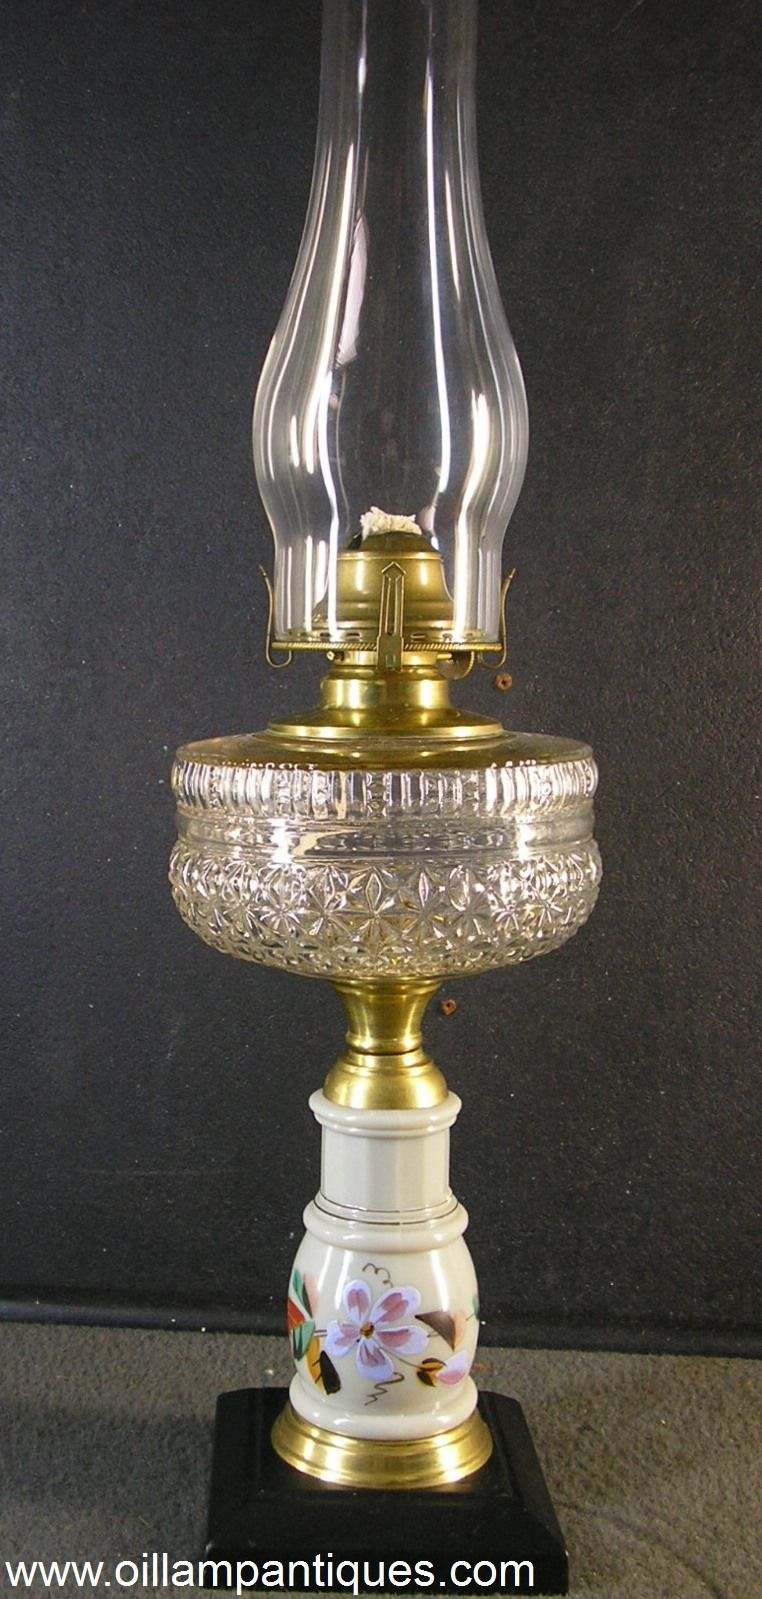 Kerosene Stand Lamps Or Composite Lamps Like This One Were Most Popular Between 1880 1900 Being Cheap To Make Attractive O Lamp Oil Lamps Antique Oil Lamps